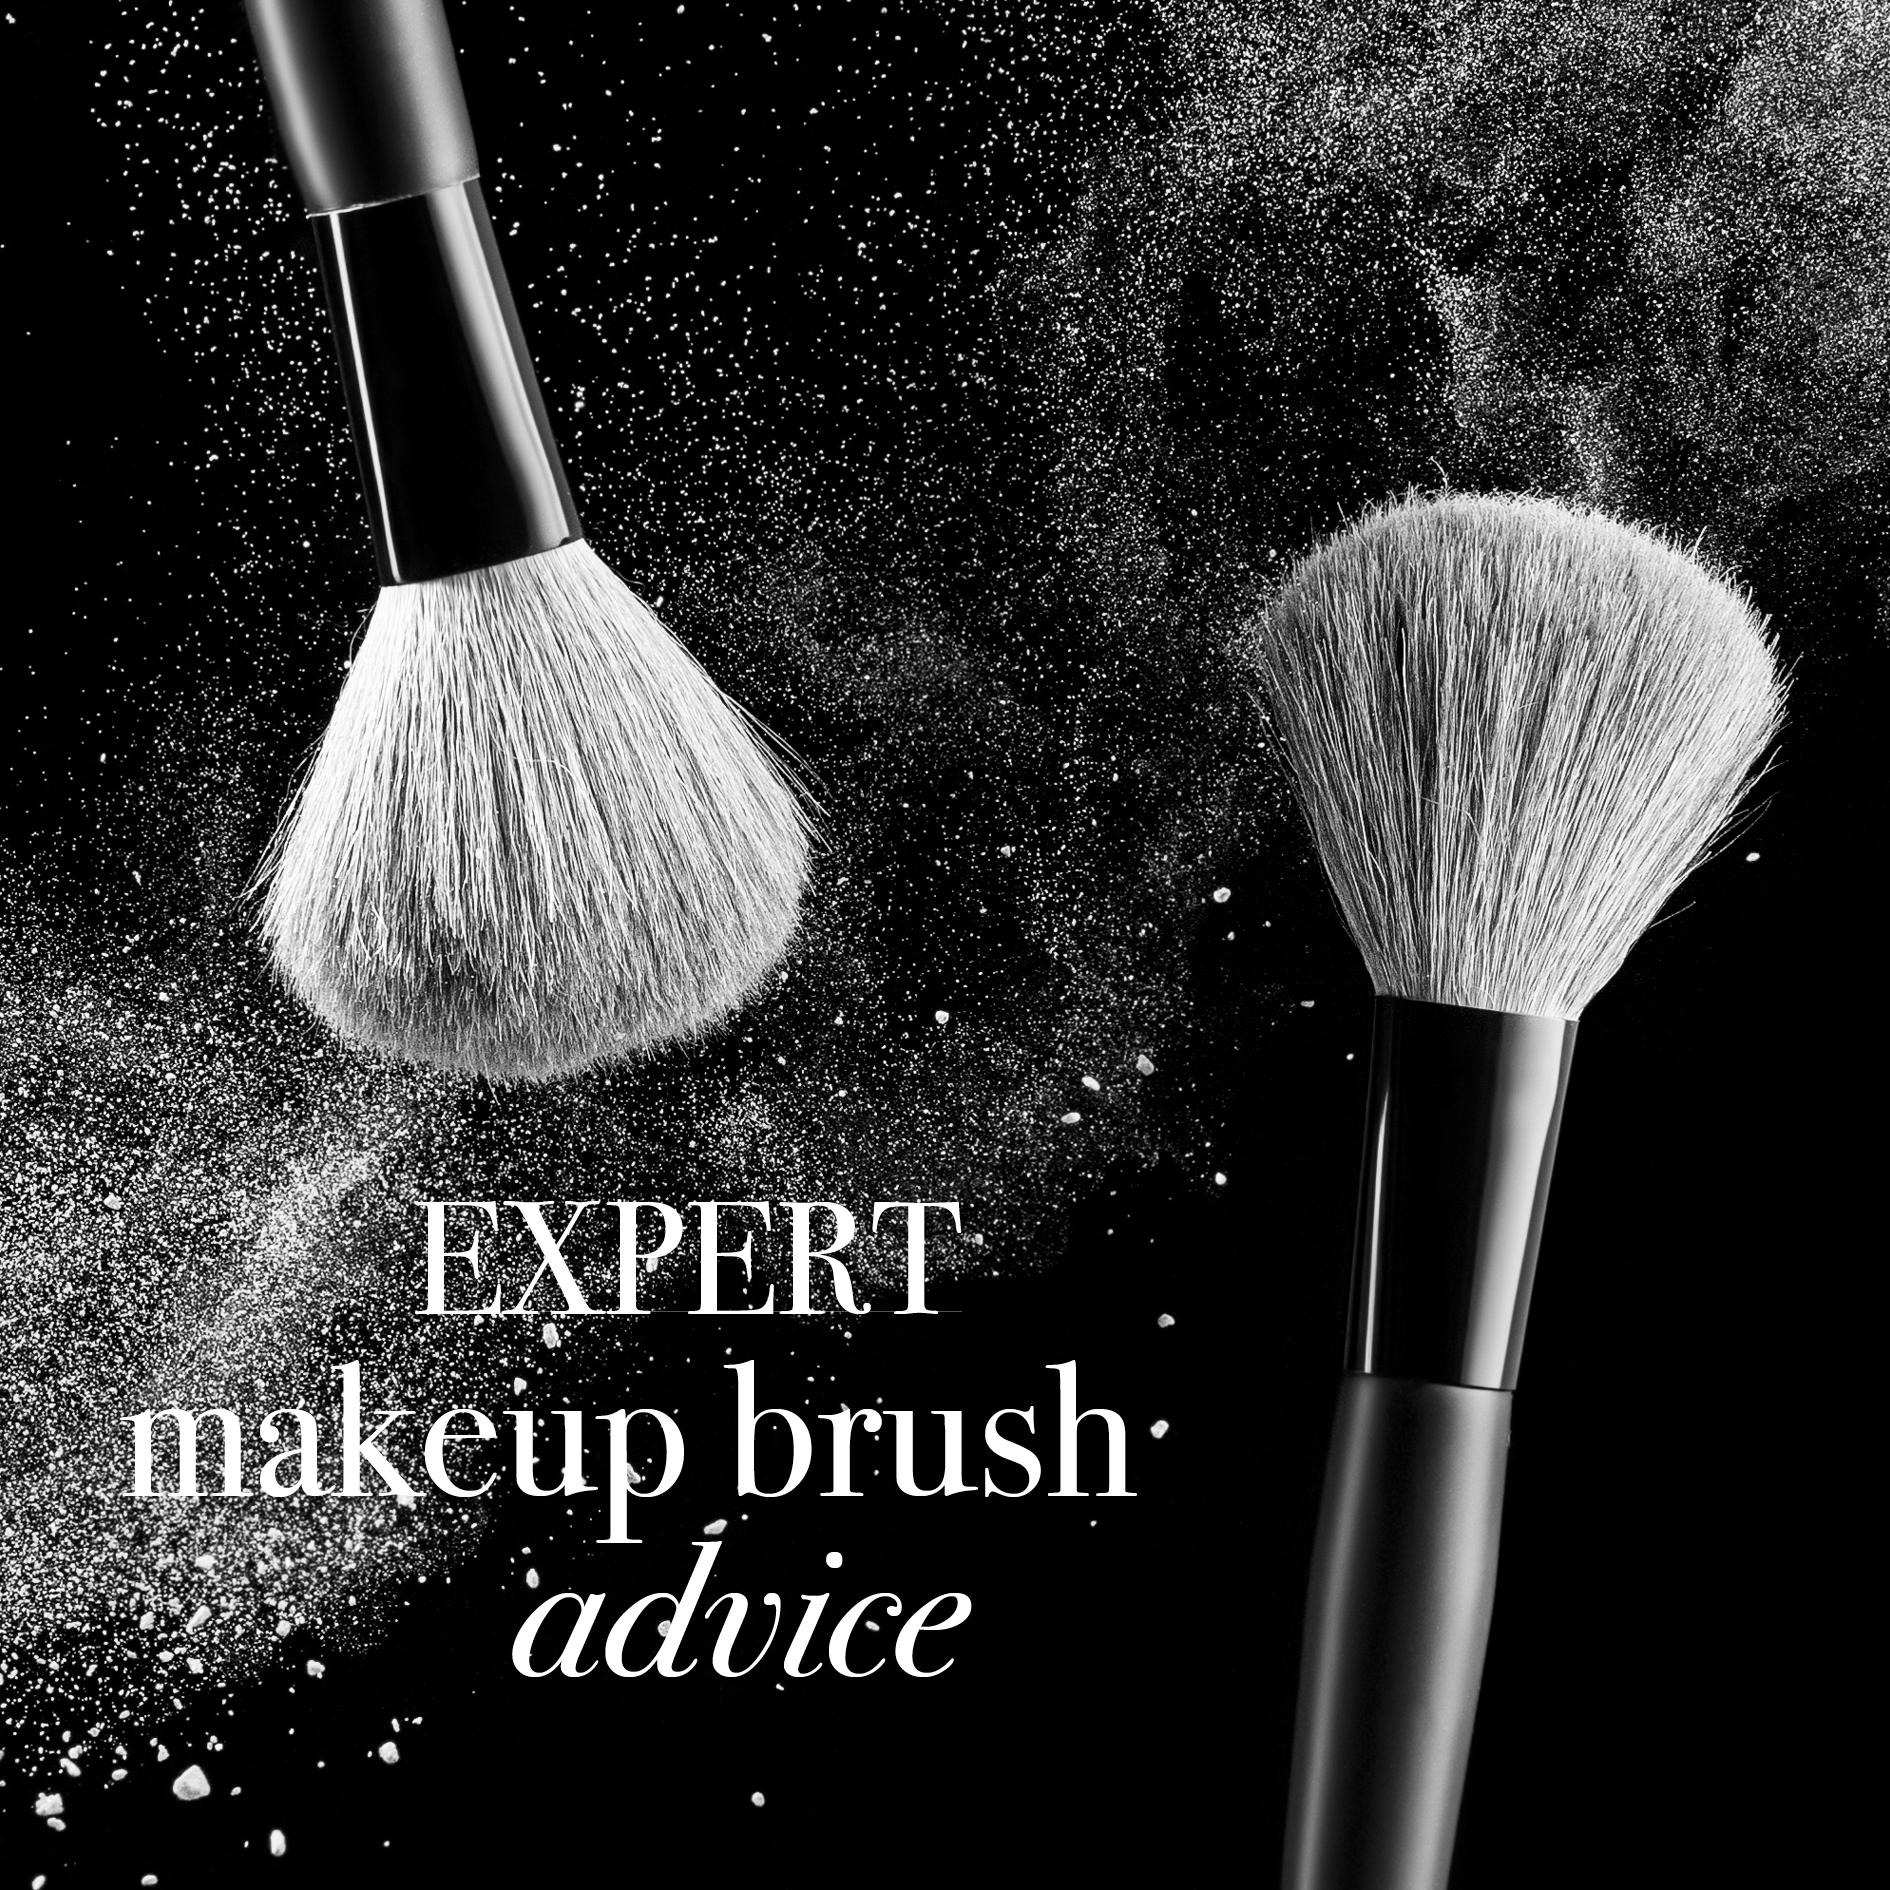 Makeup Brushes - Tools of the Trade